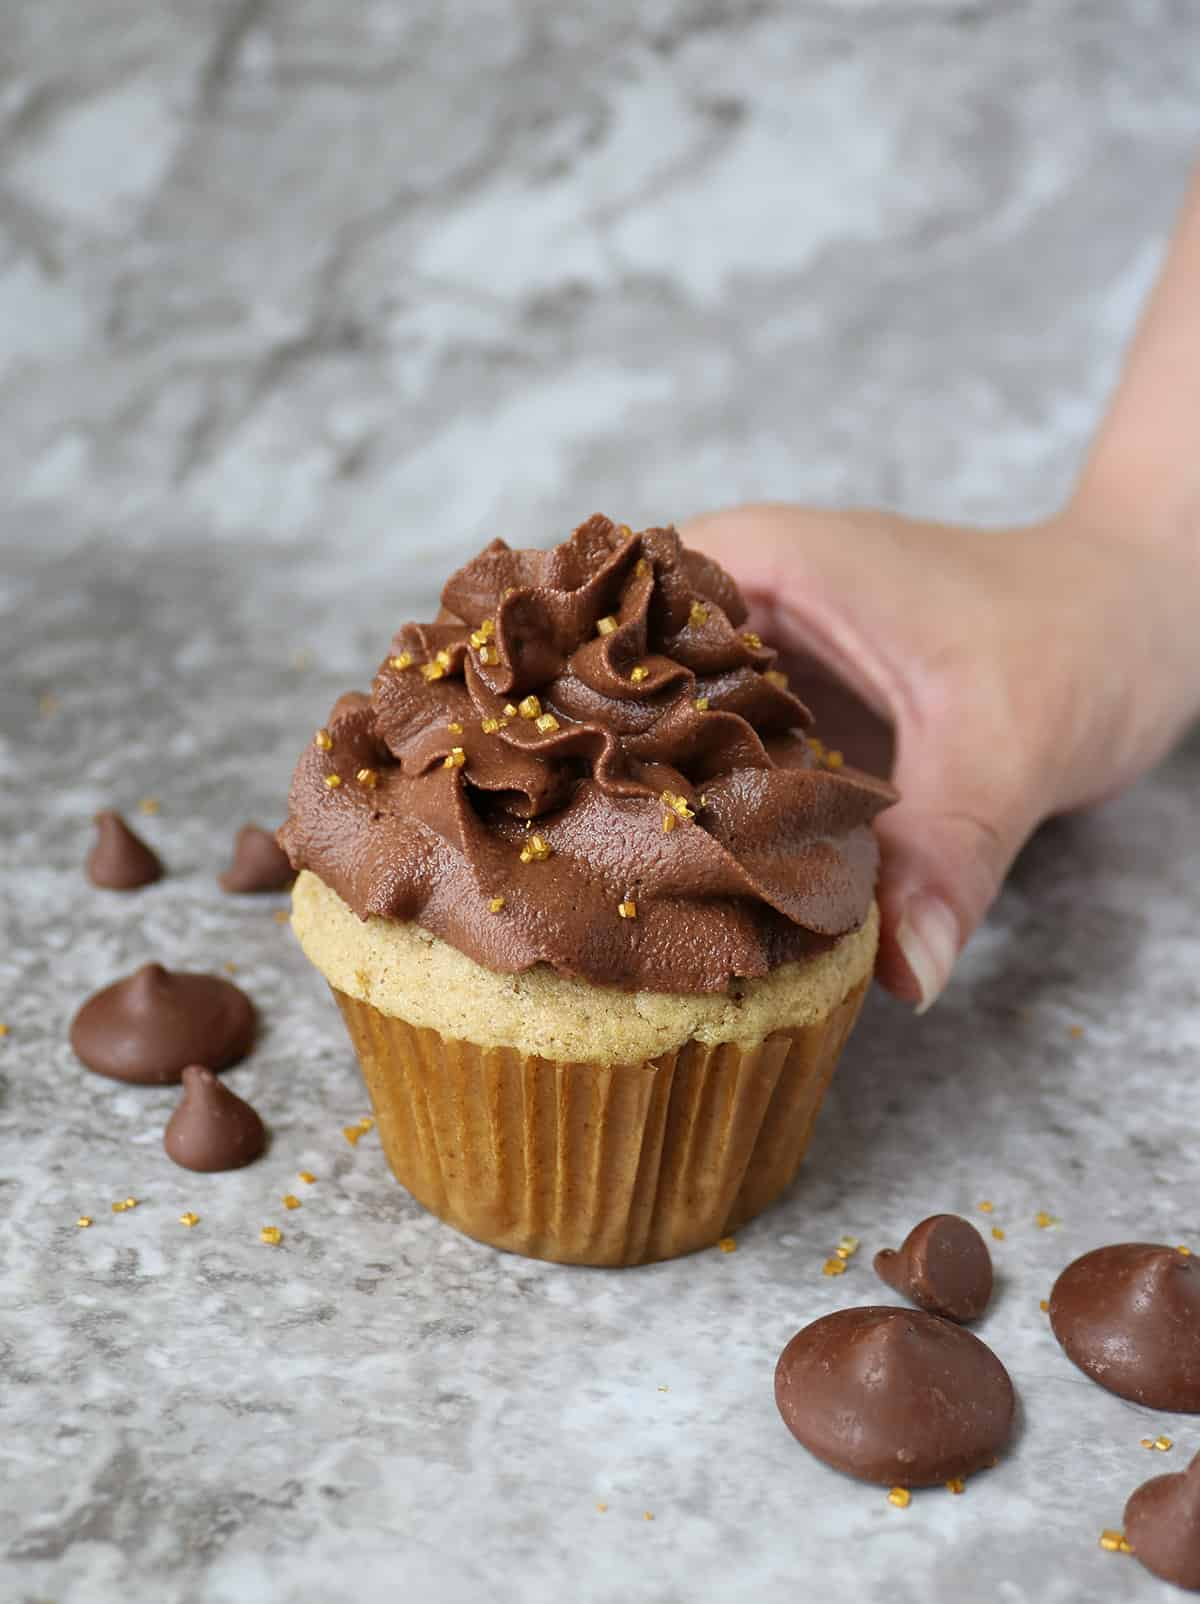 Easy vegan Cupcakes with vegan chocolate frosting